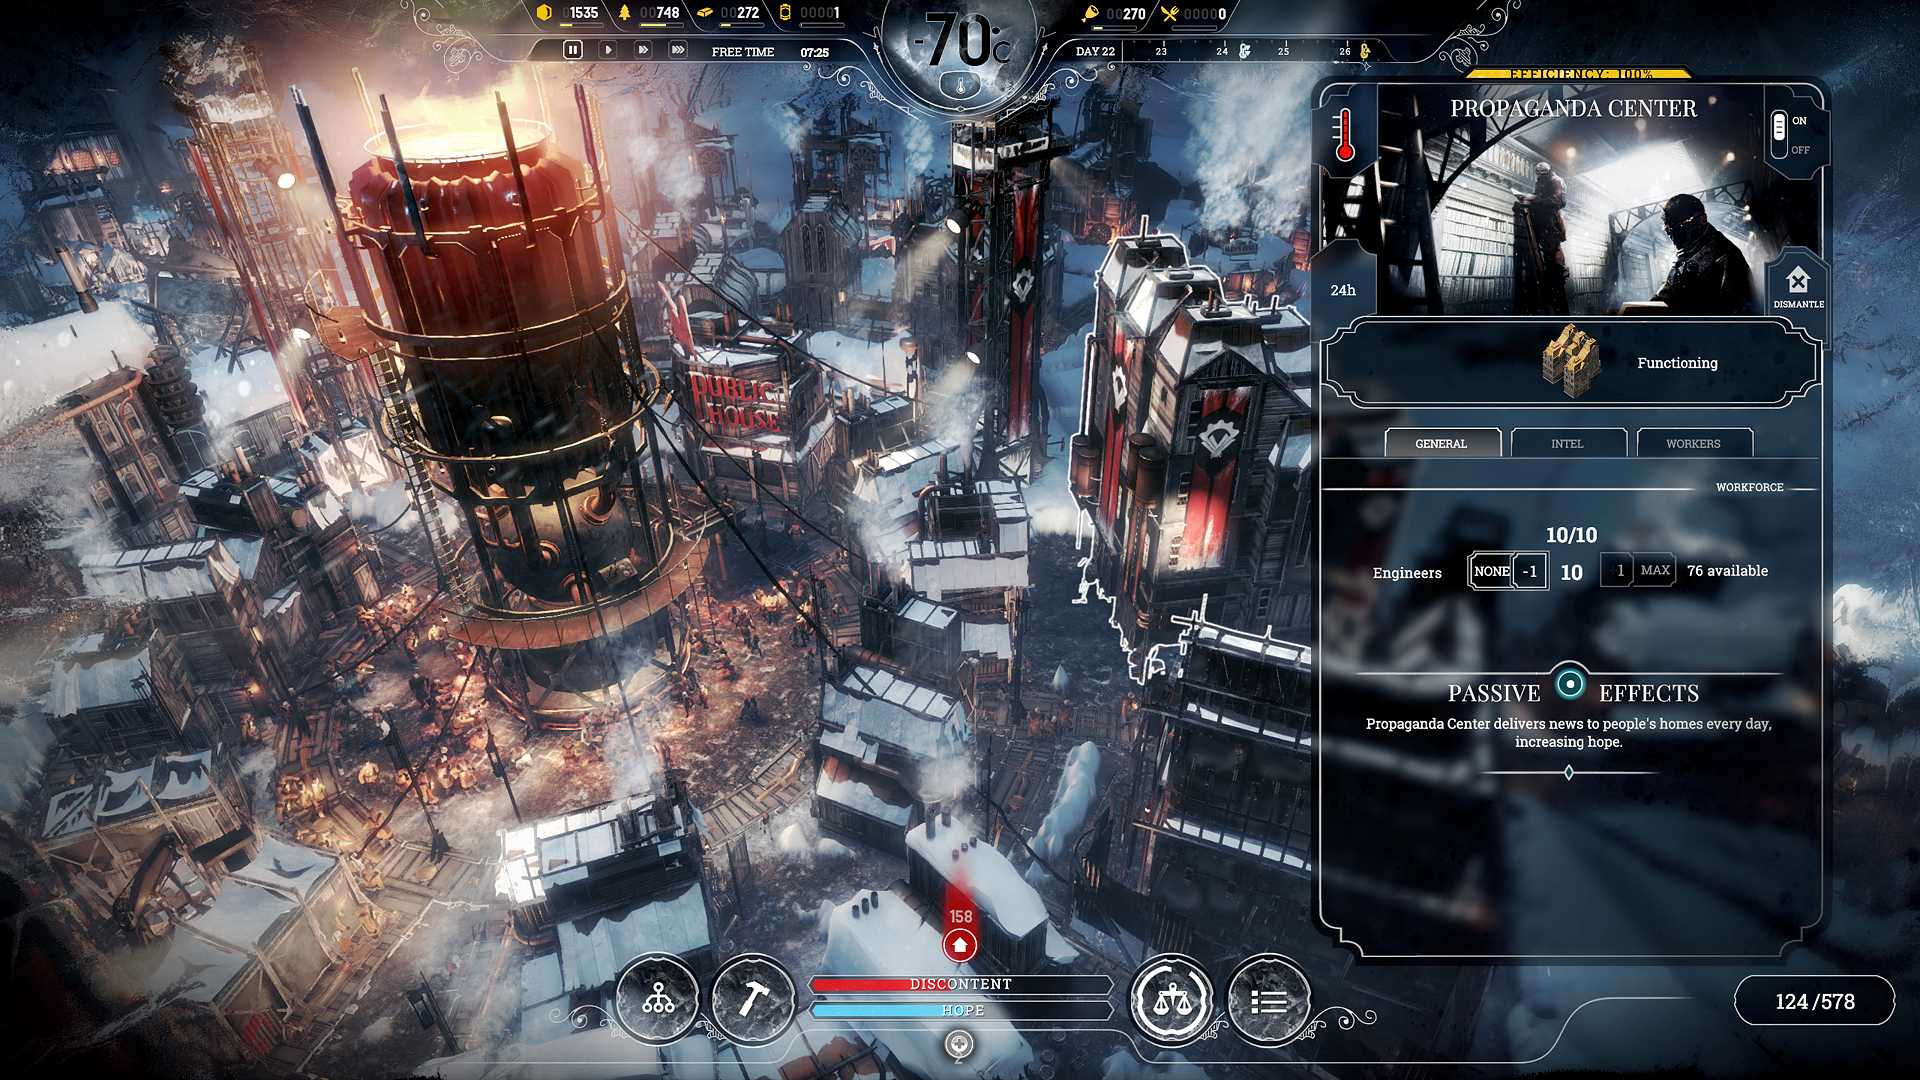 Frostpunk Review: Damned If You Do, Damned If You Don't